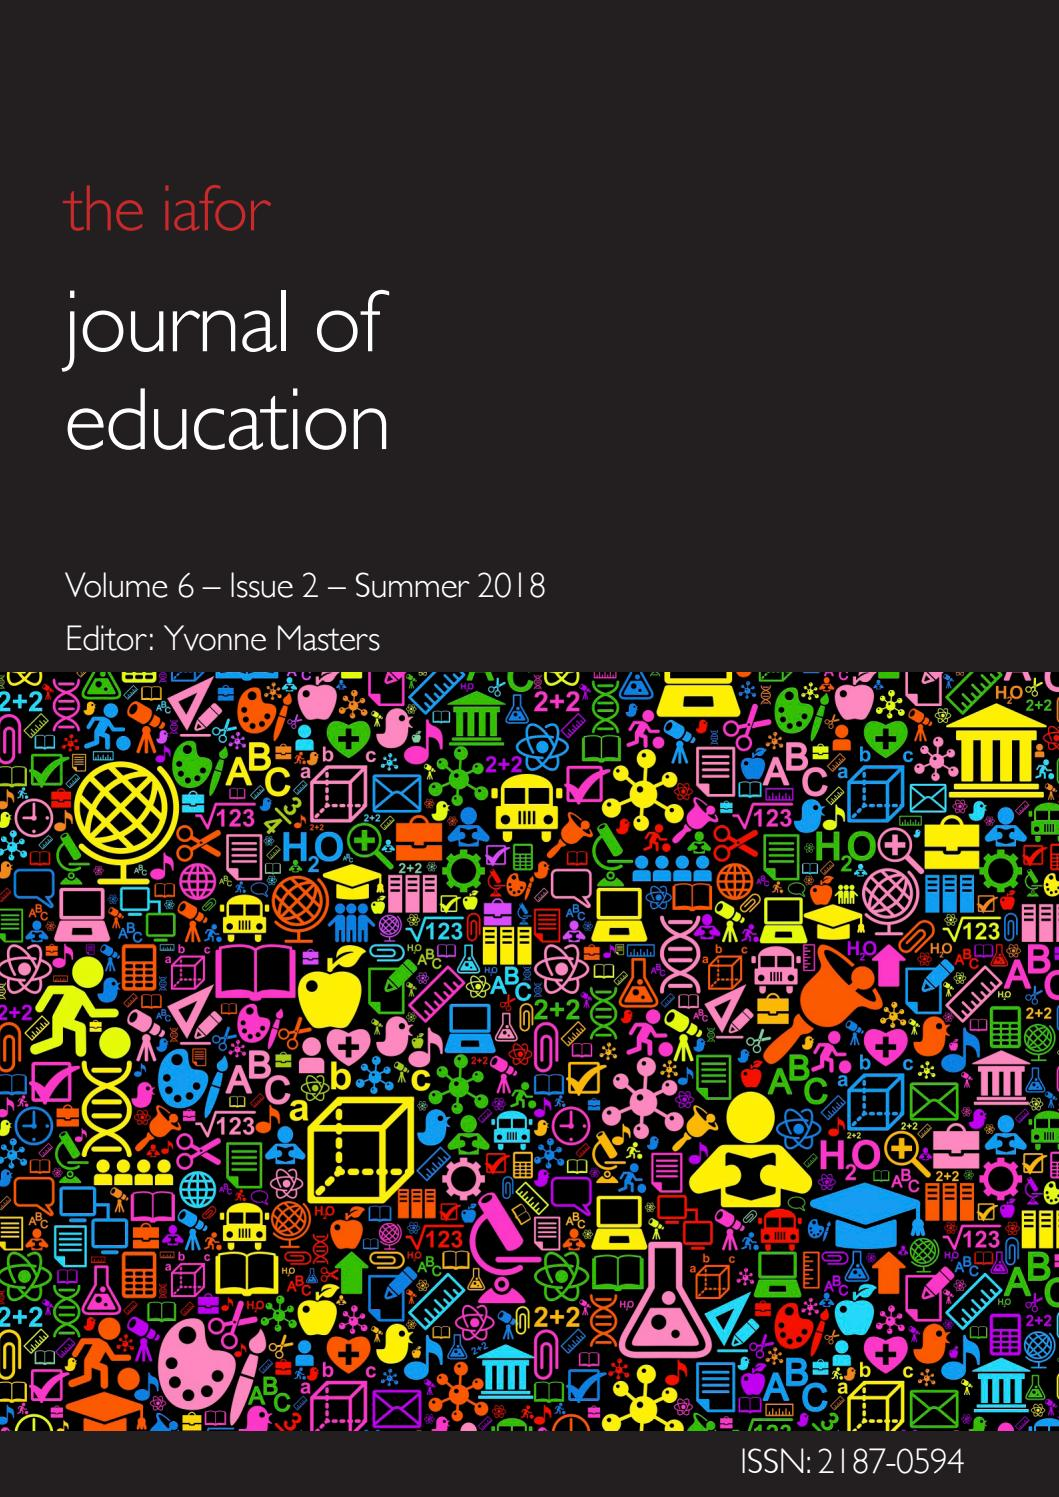 IAFOR Journal of Education Volume 6 – Issue 2 – Summer 2018